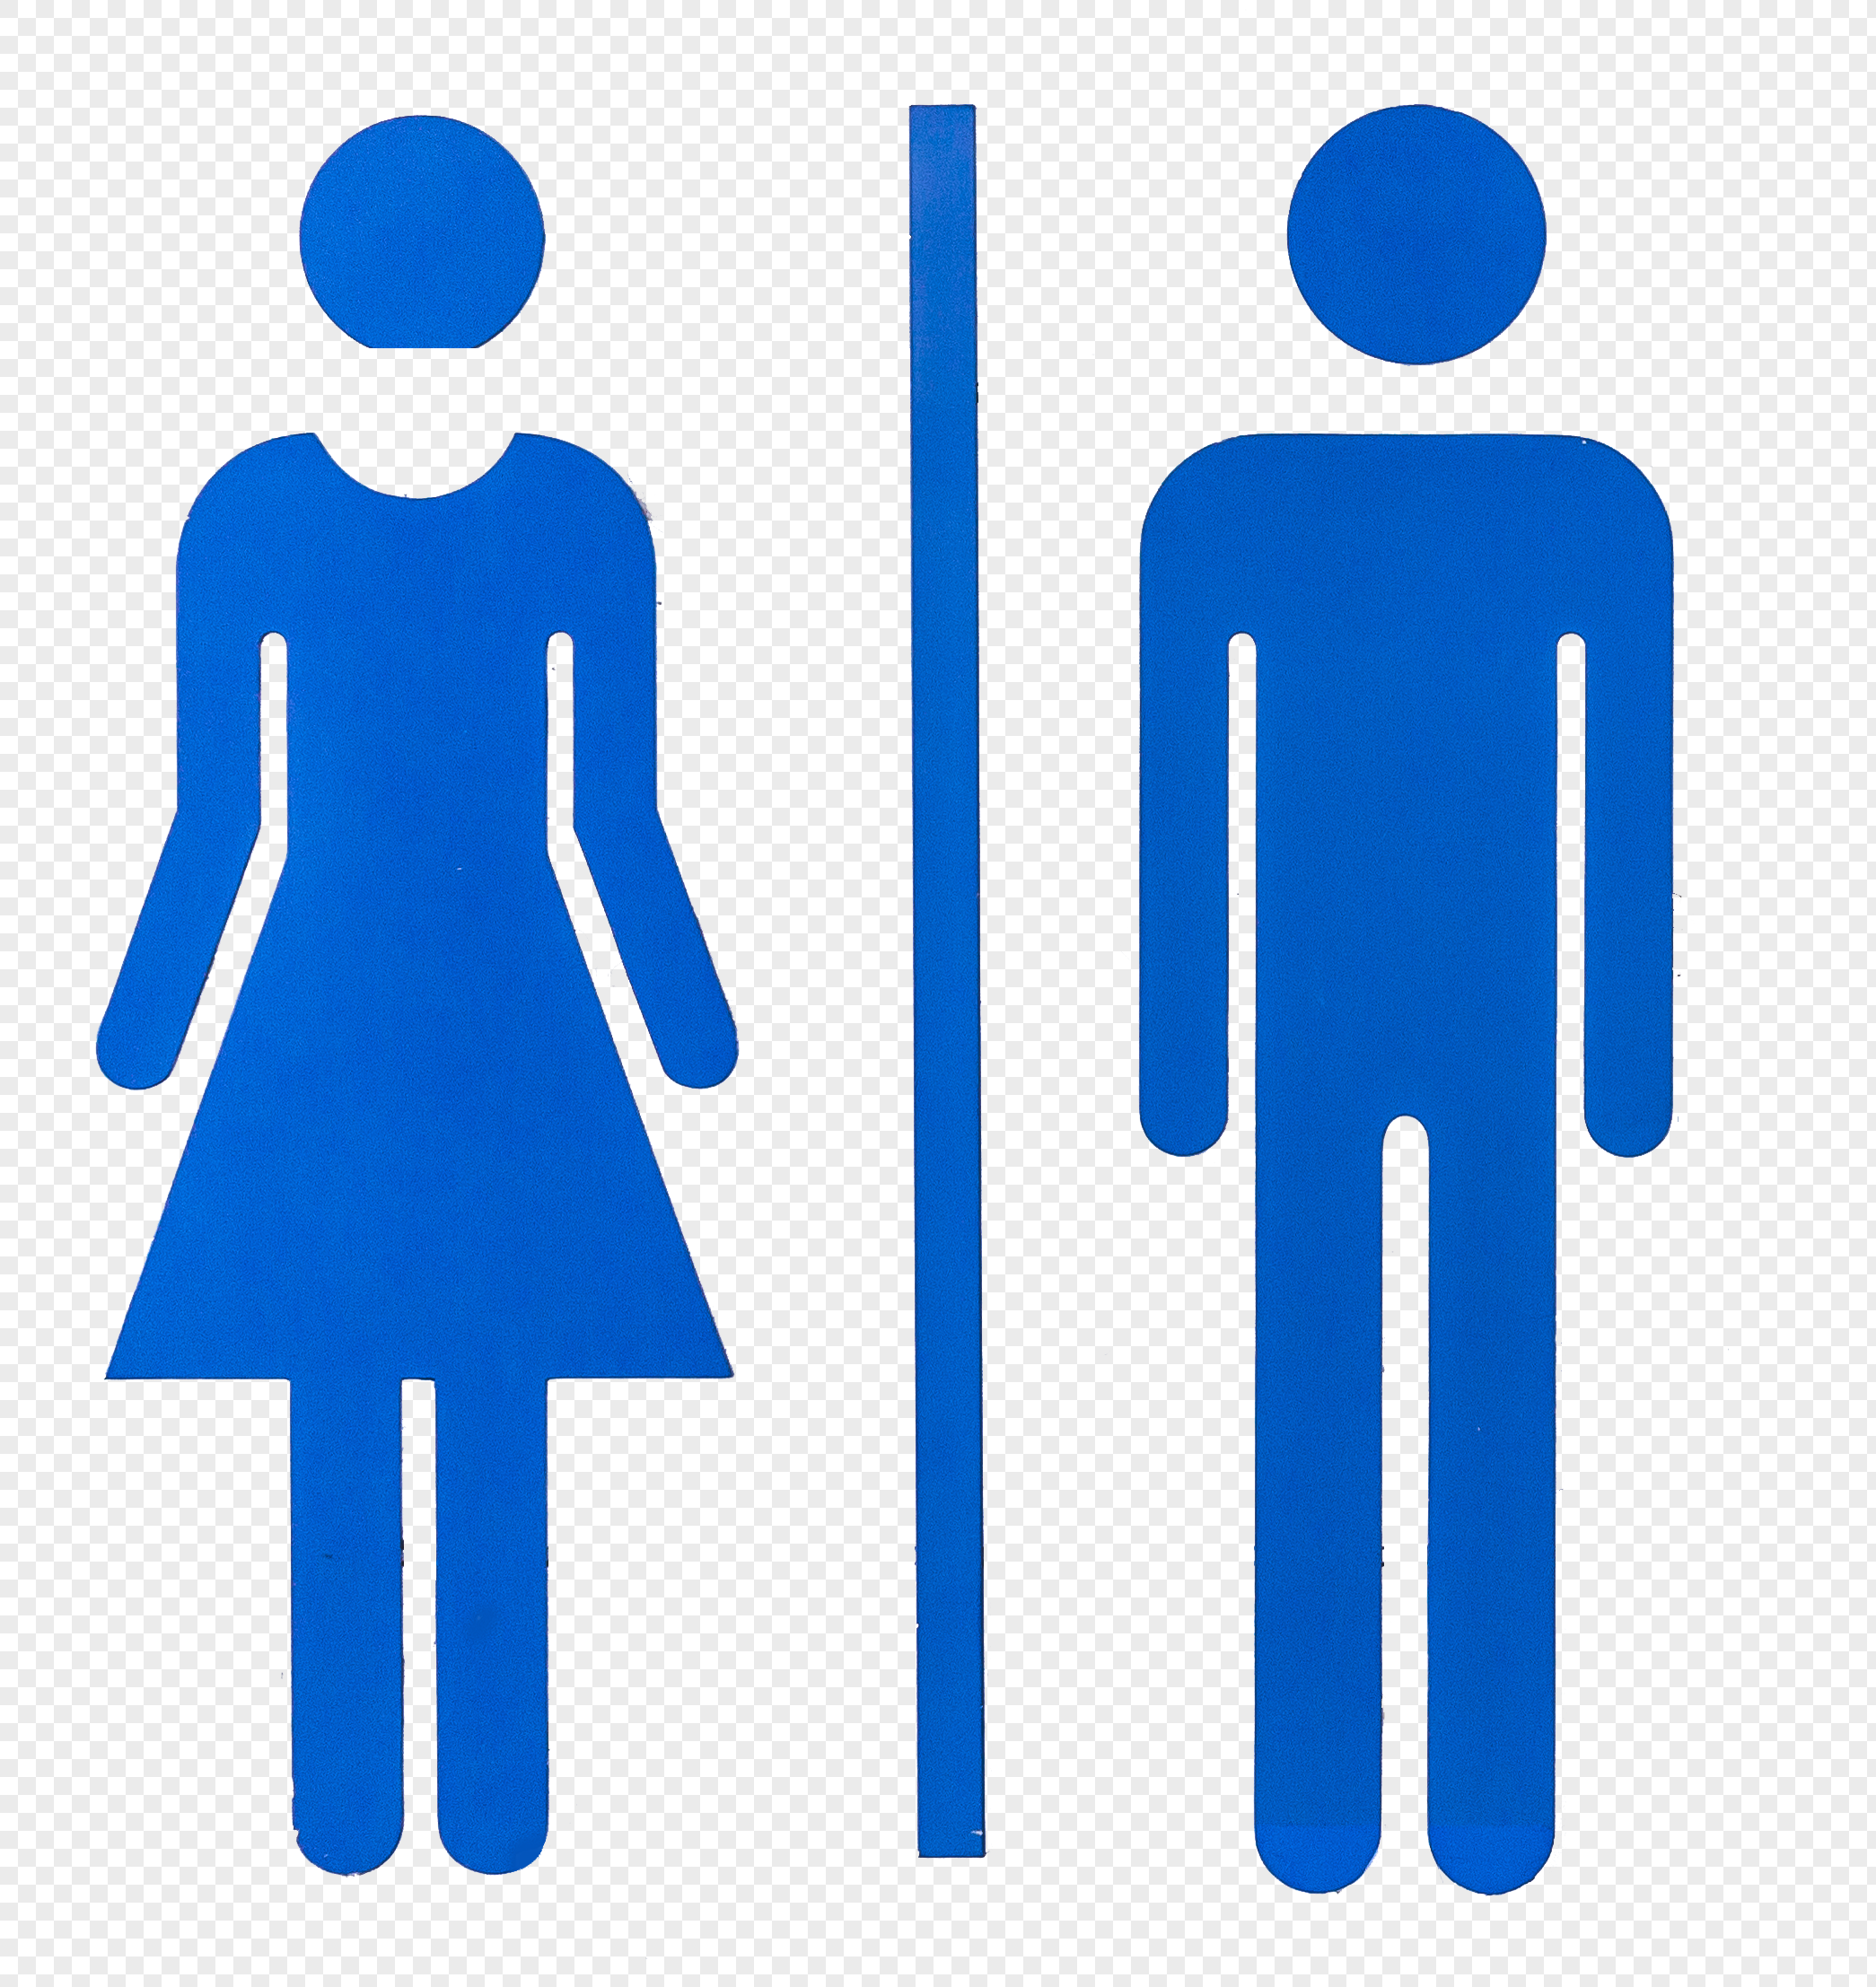 Toilet logo of the airport emu station graphics image_picture free ...